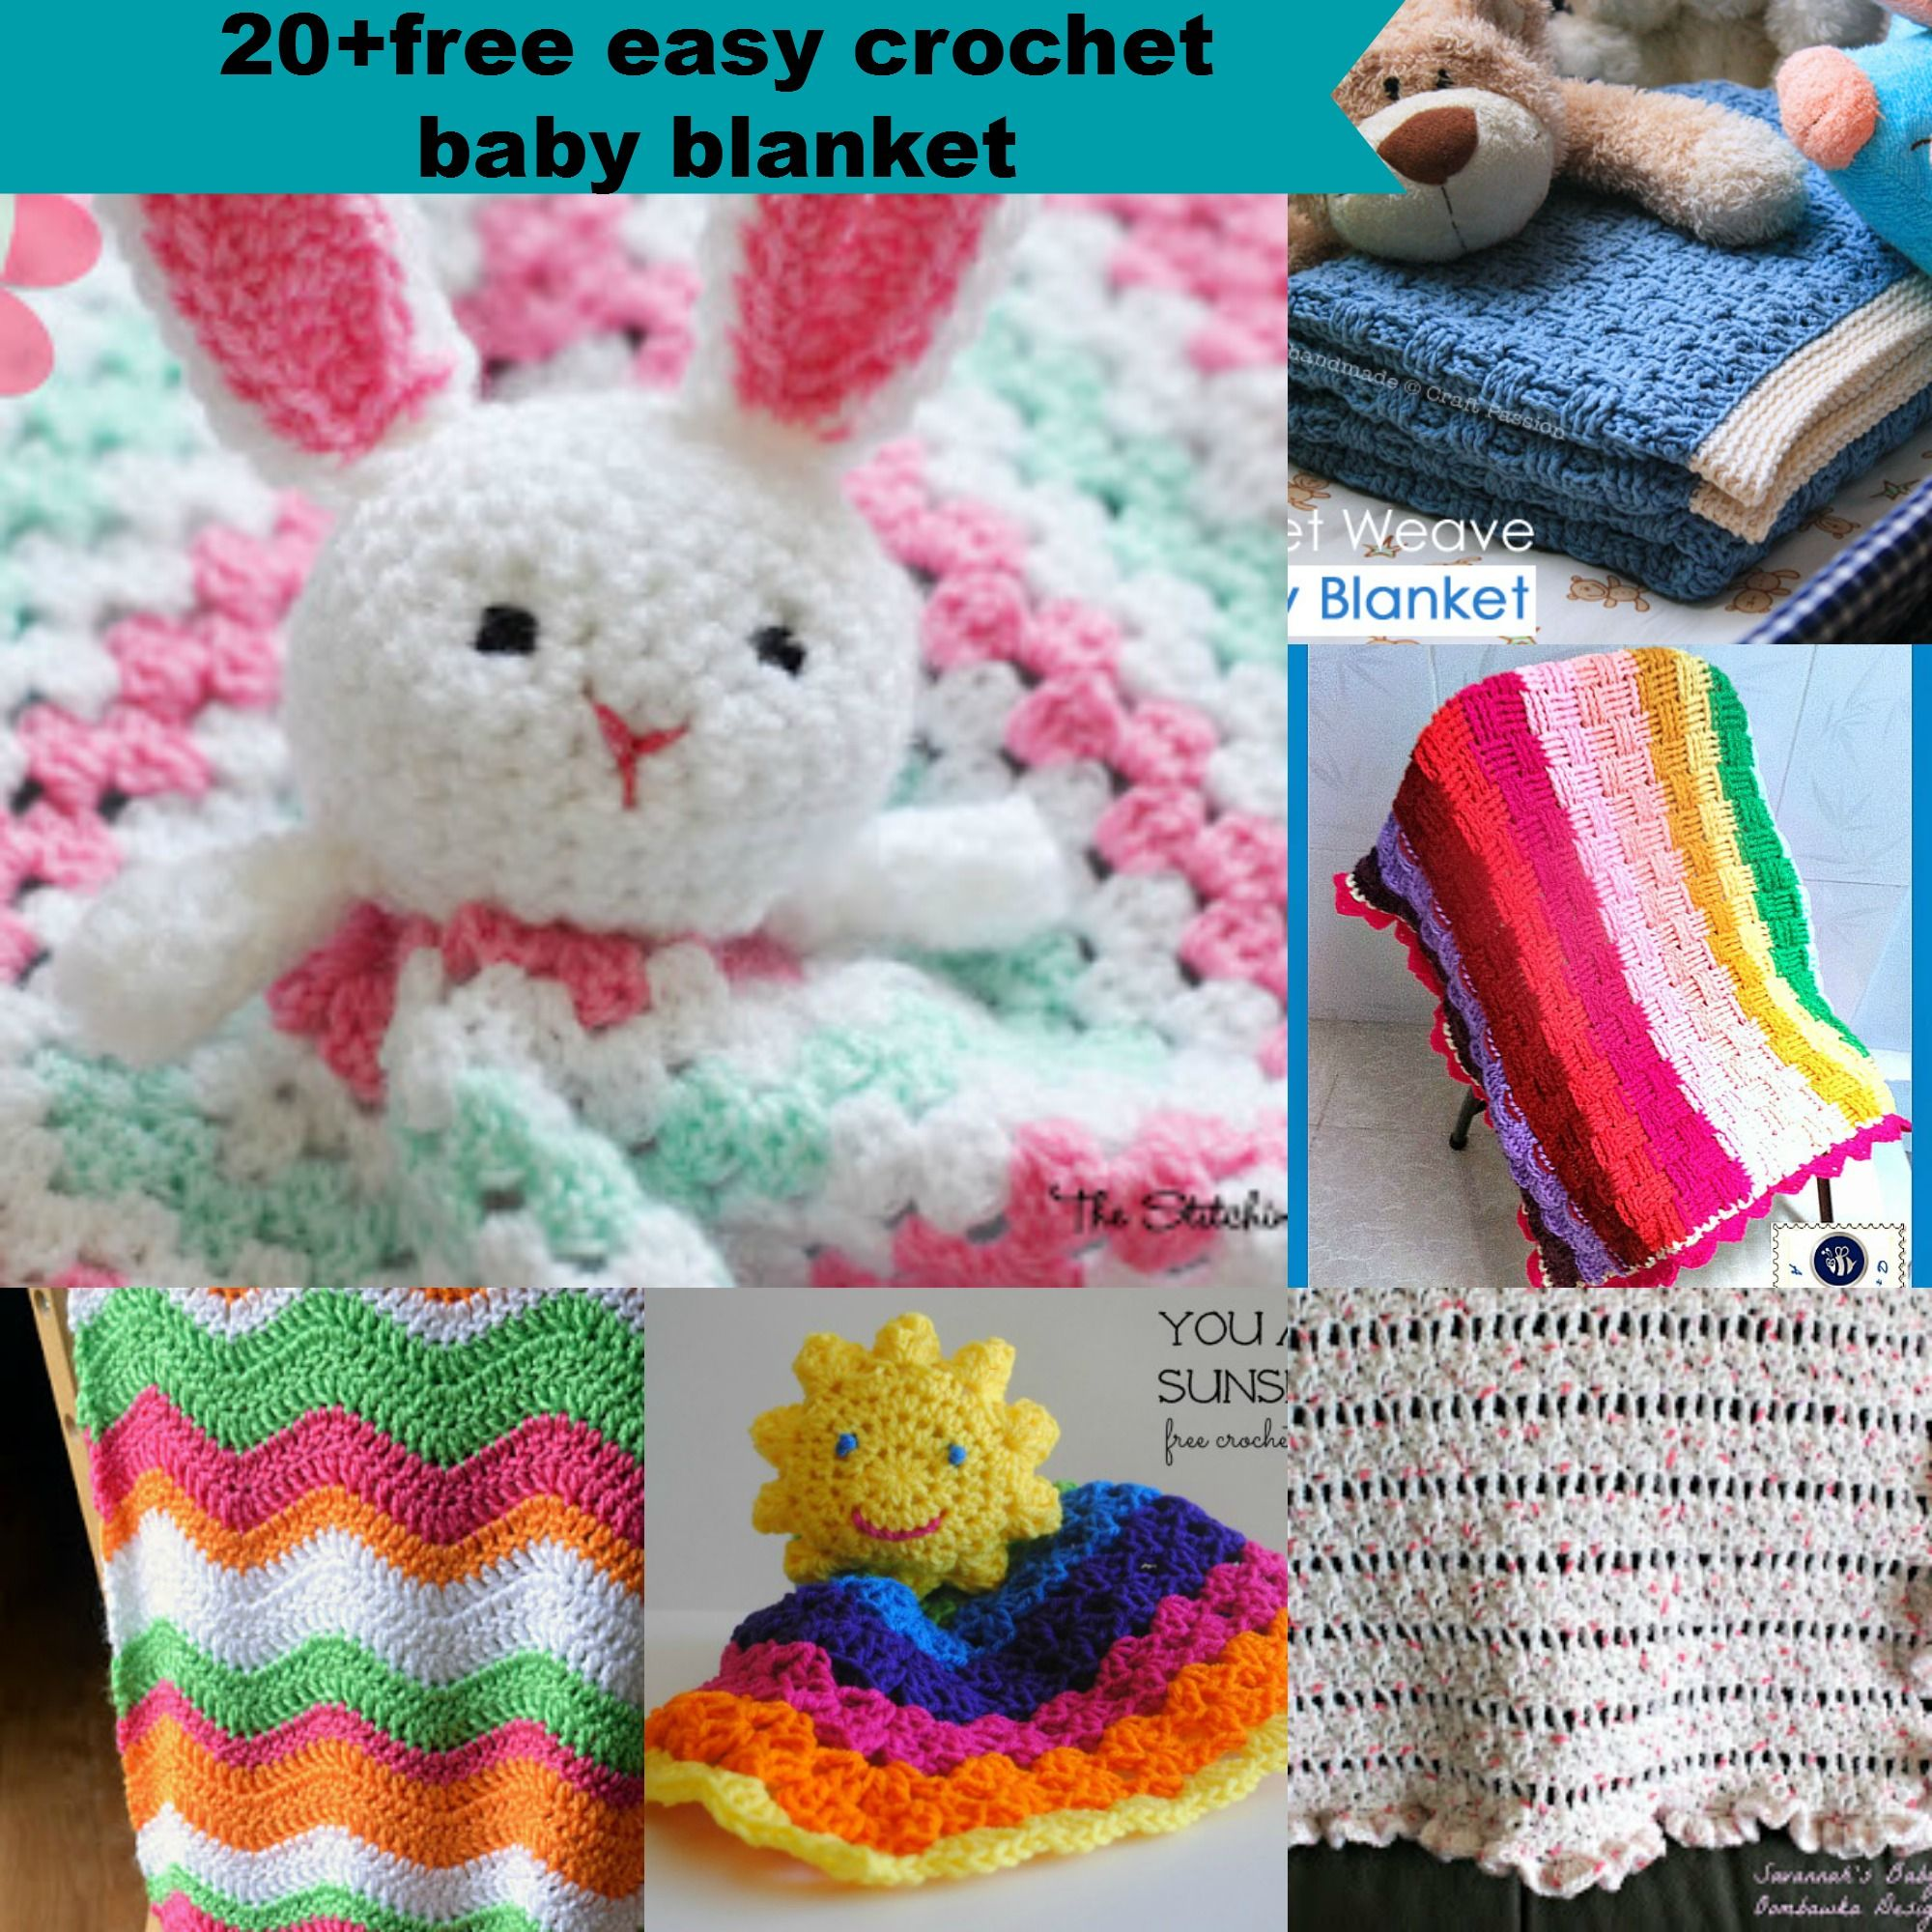 20+free crochet easy baby blanket pattern | Baby Keith | Pinterest ...